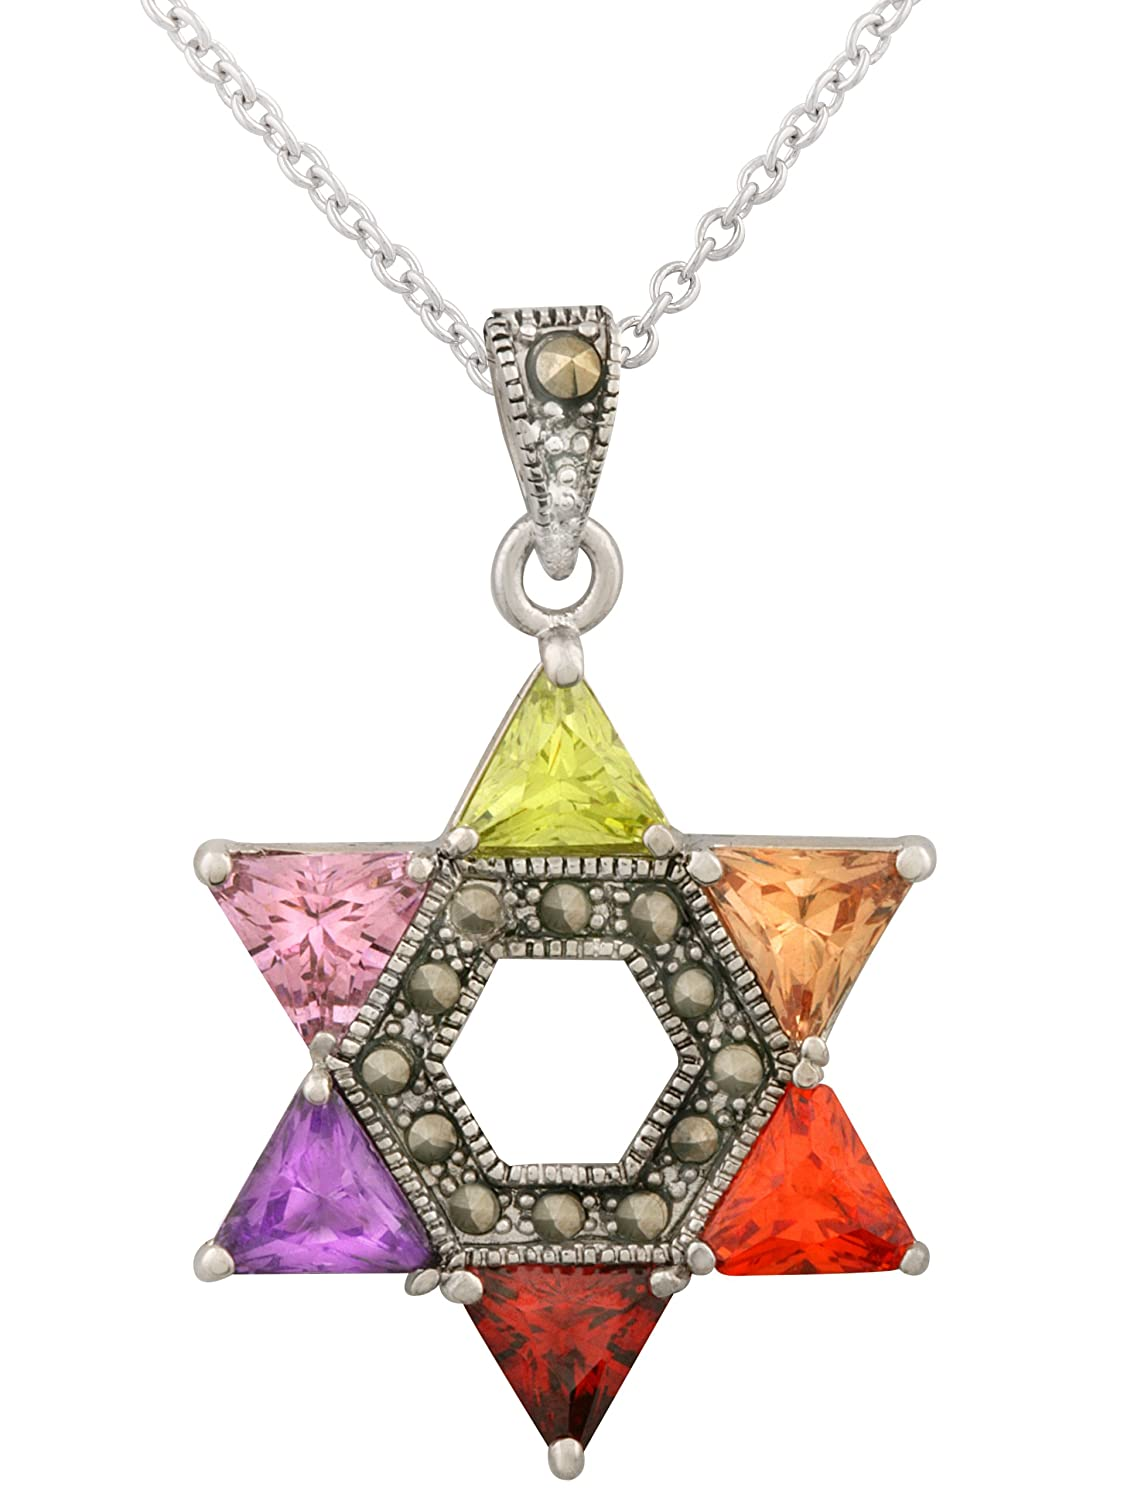 gift of product jewelrynew swarovski pendant boutique new necklace magen jewish u israeli shops for women david charmsgold star designerstar eye year charms jewelry evil gold designer